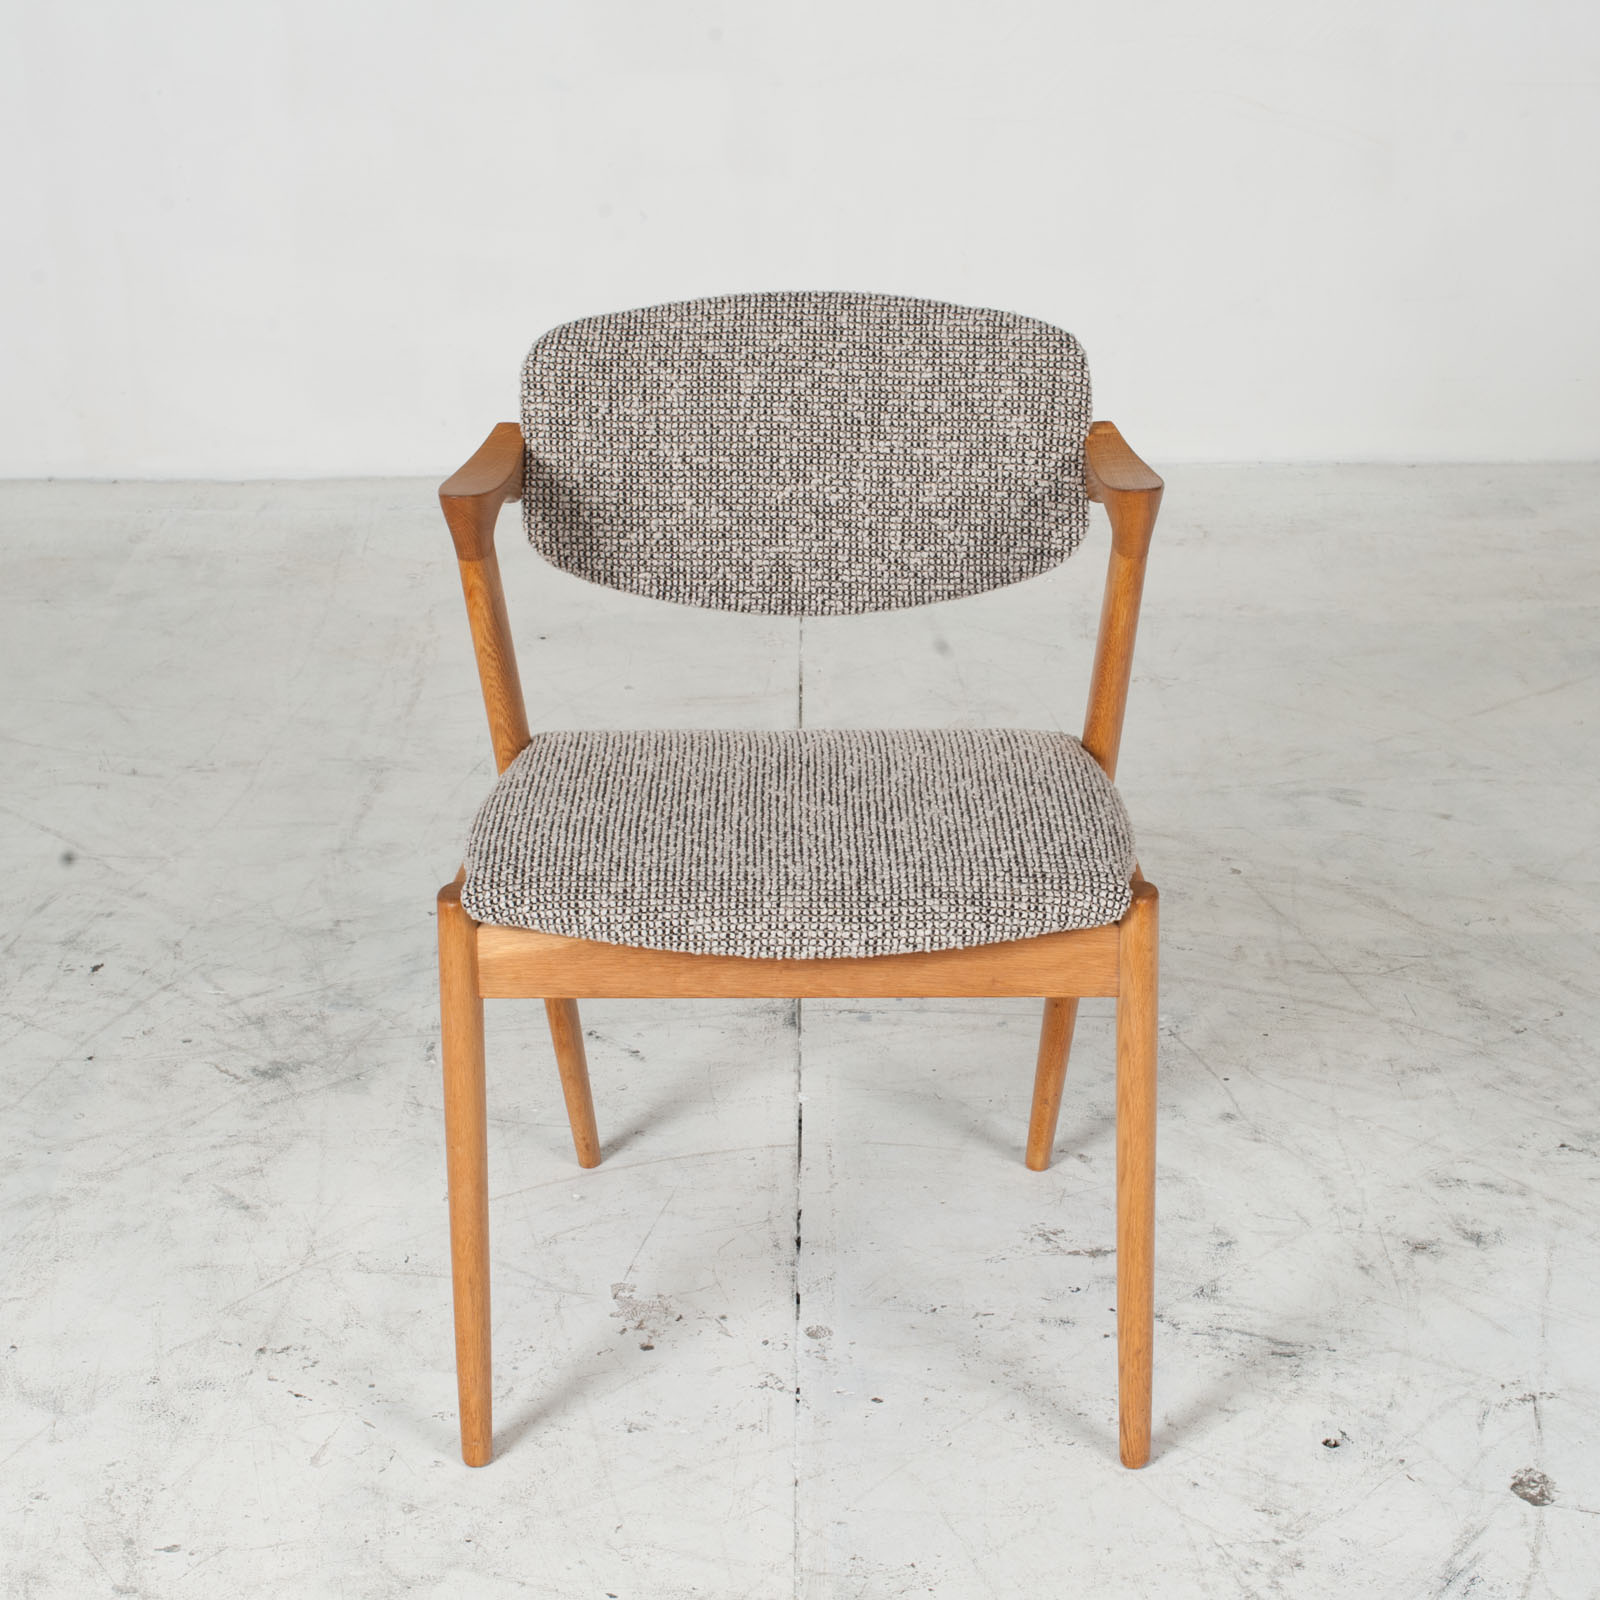 Set 6 No. 42 Dining Chairs By Kai Kristiansen In Oak 1960s Denmark 02